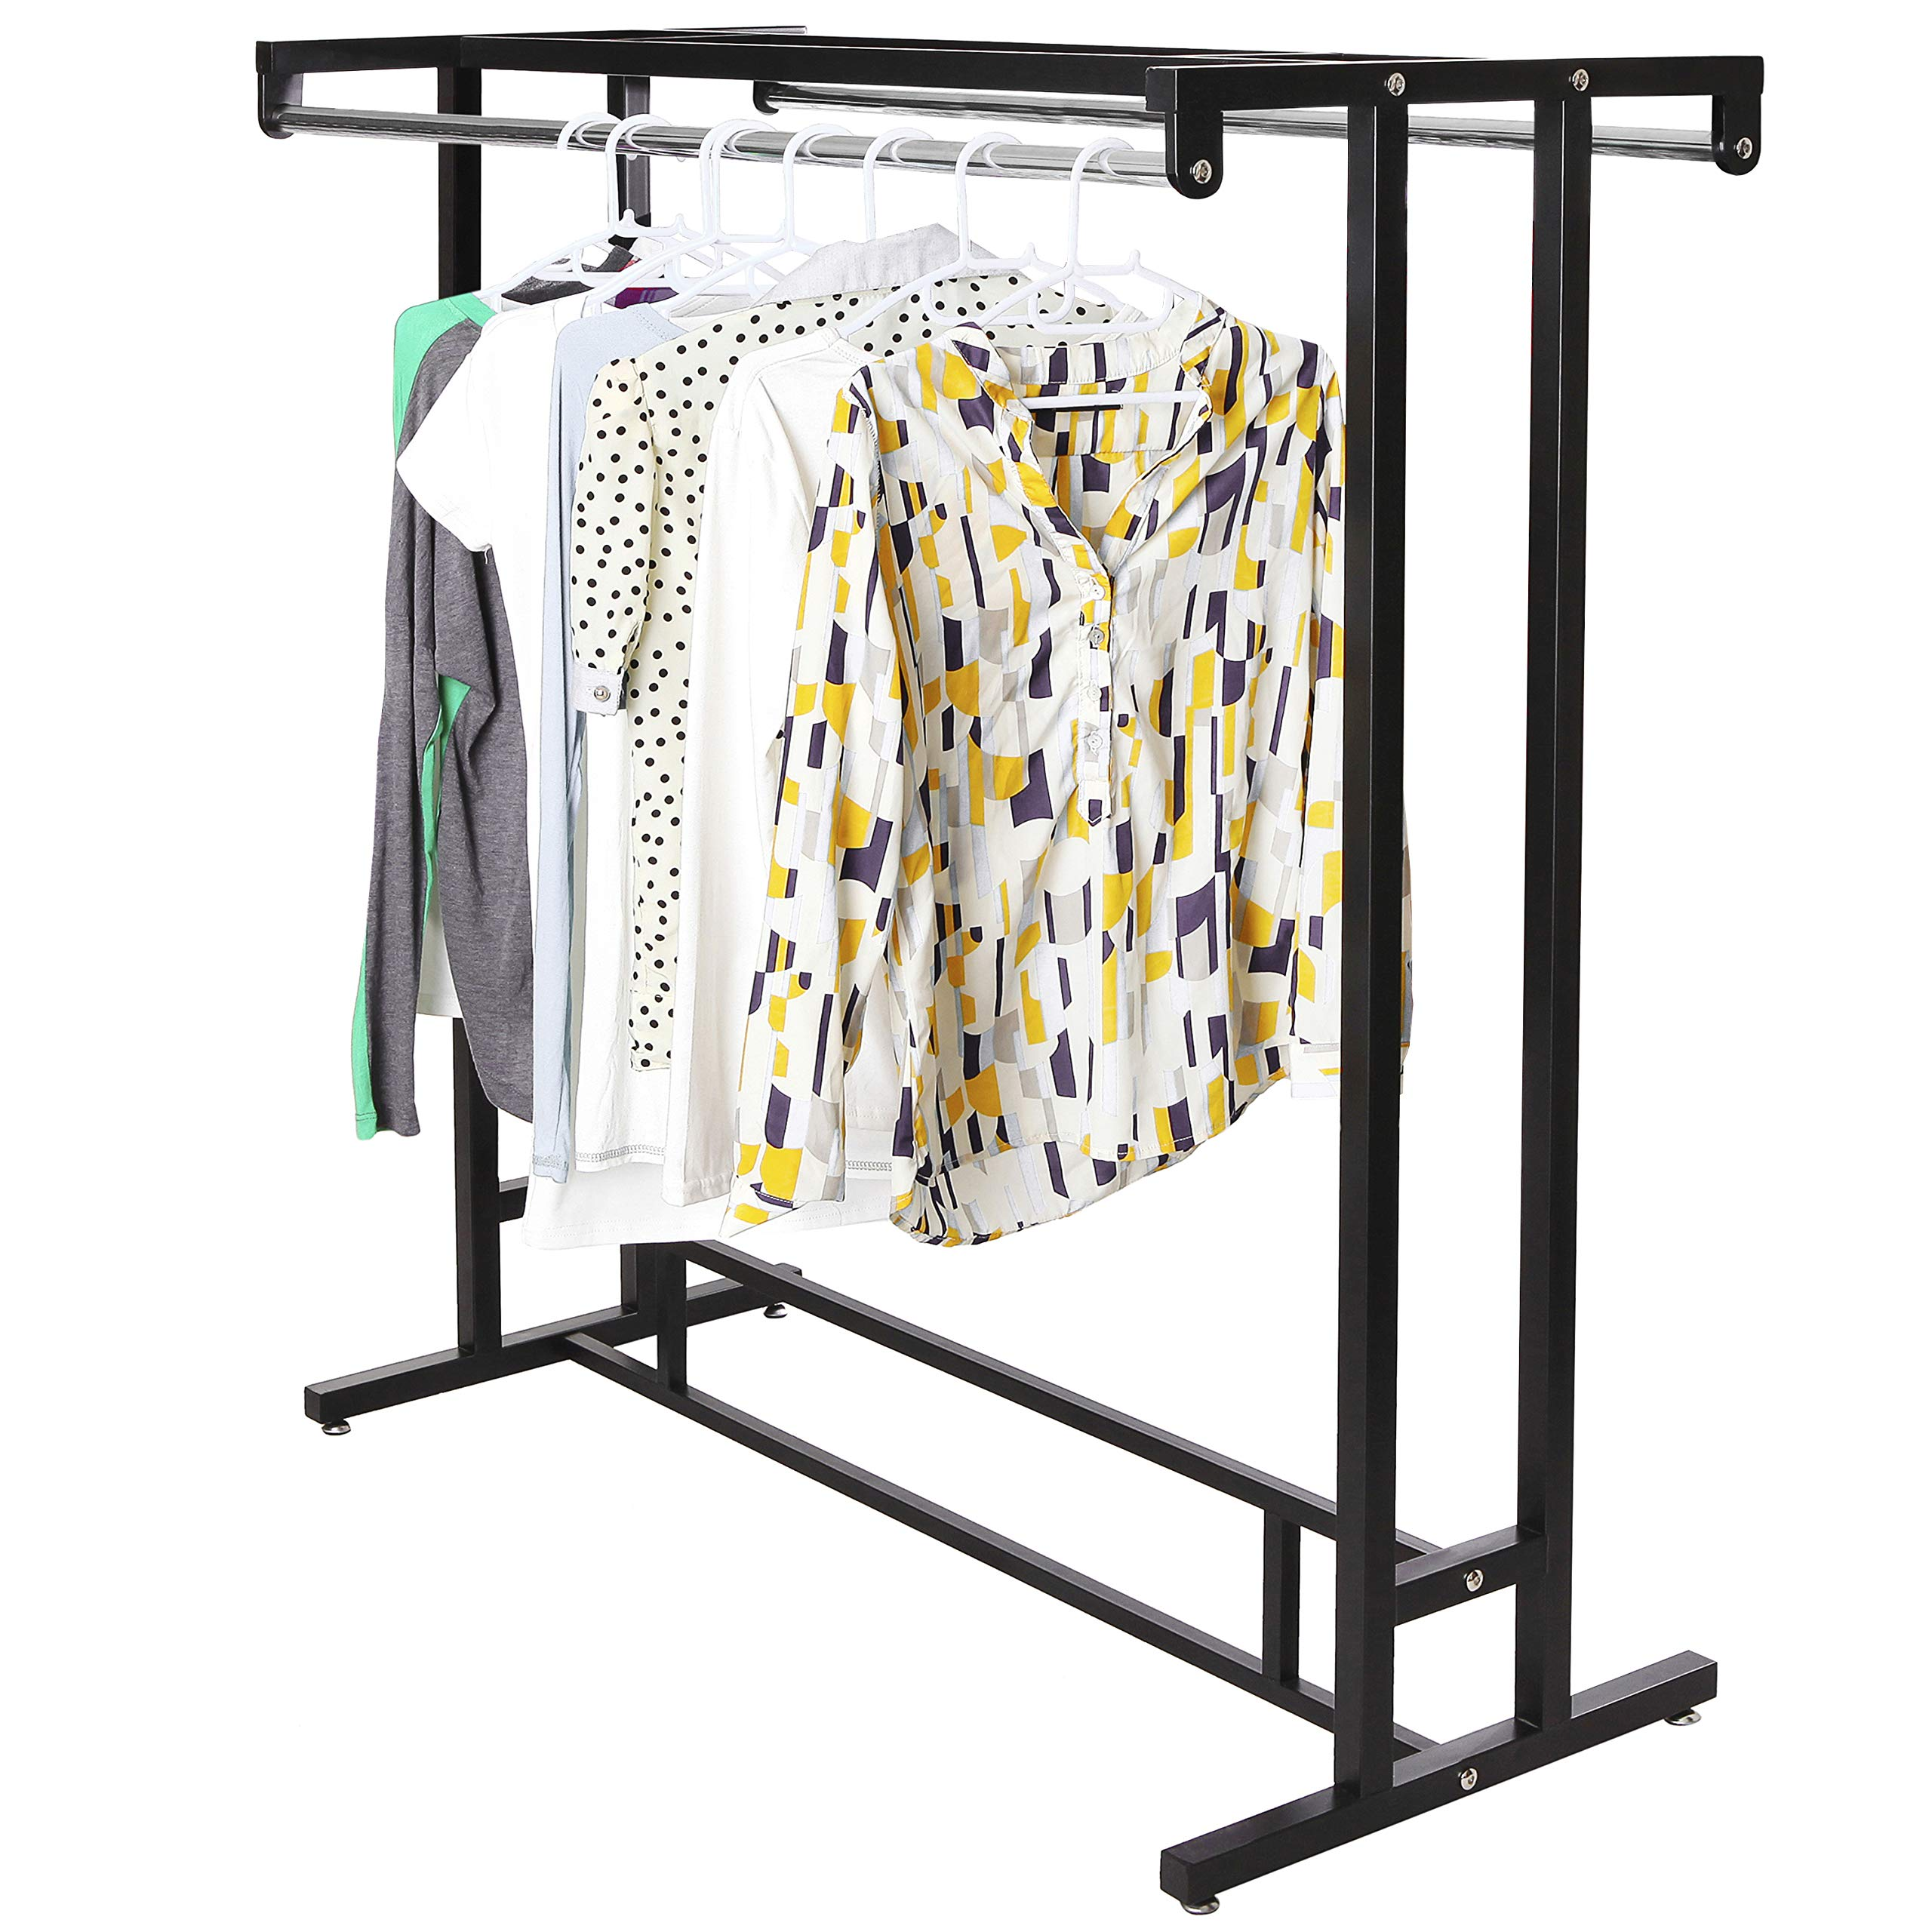 Stainless Steel Double Rod Hangrail Department Store Style Clothes / Garment Floor Display Rack - MyGift